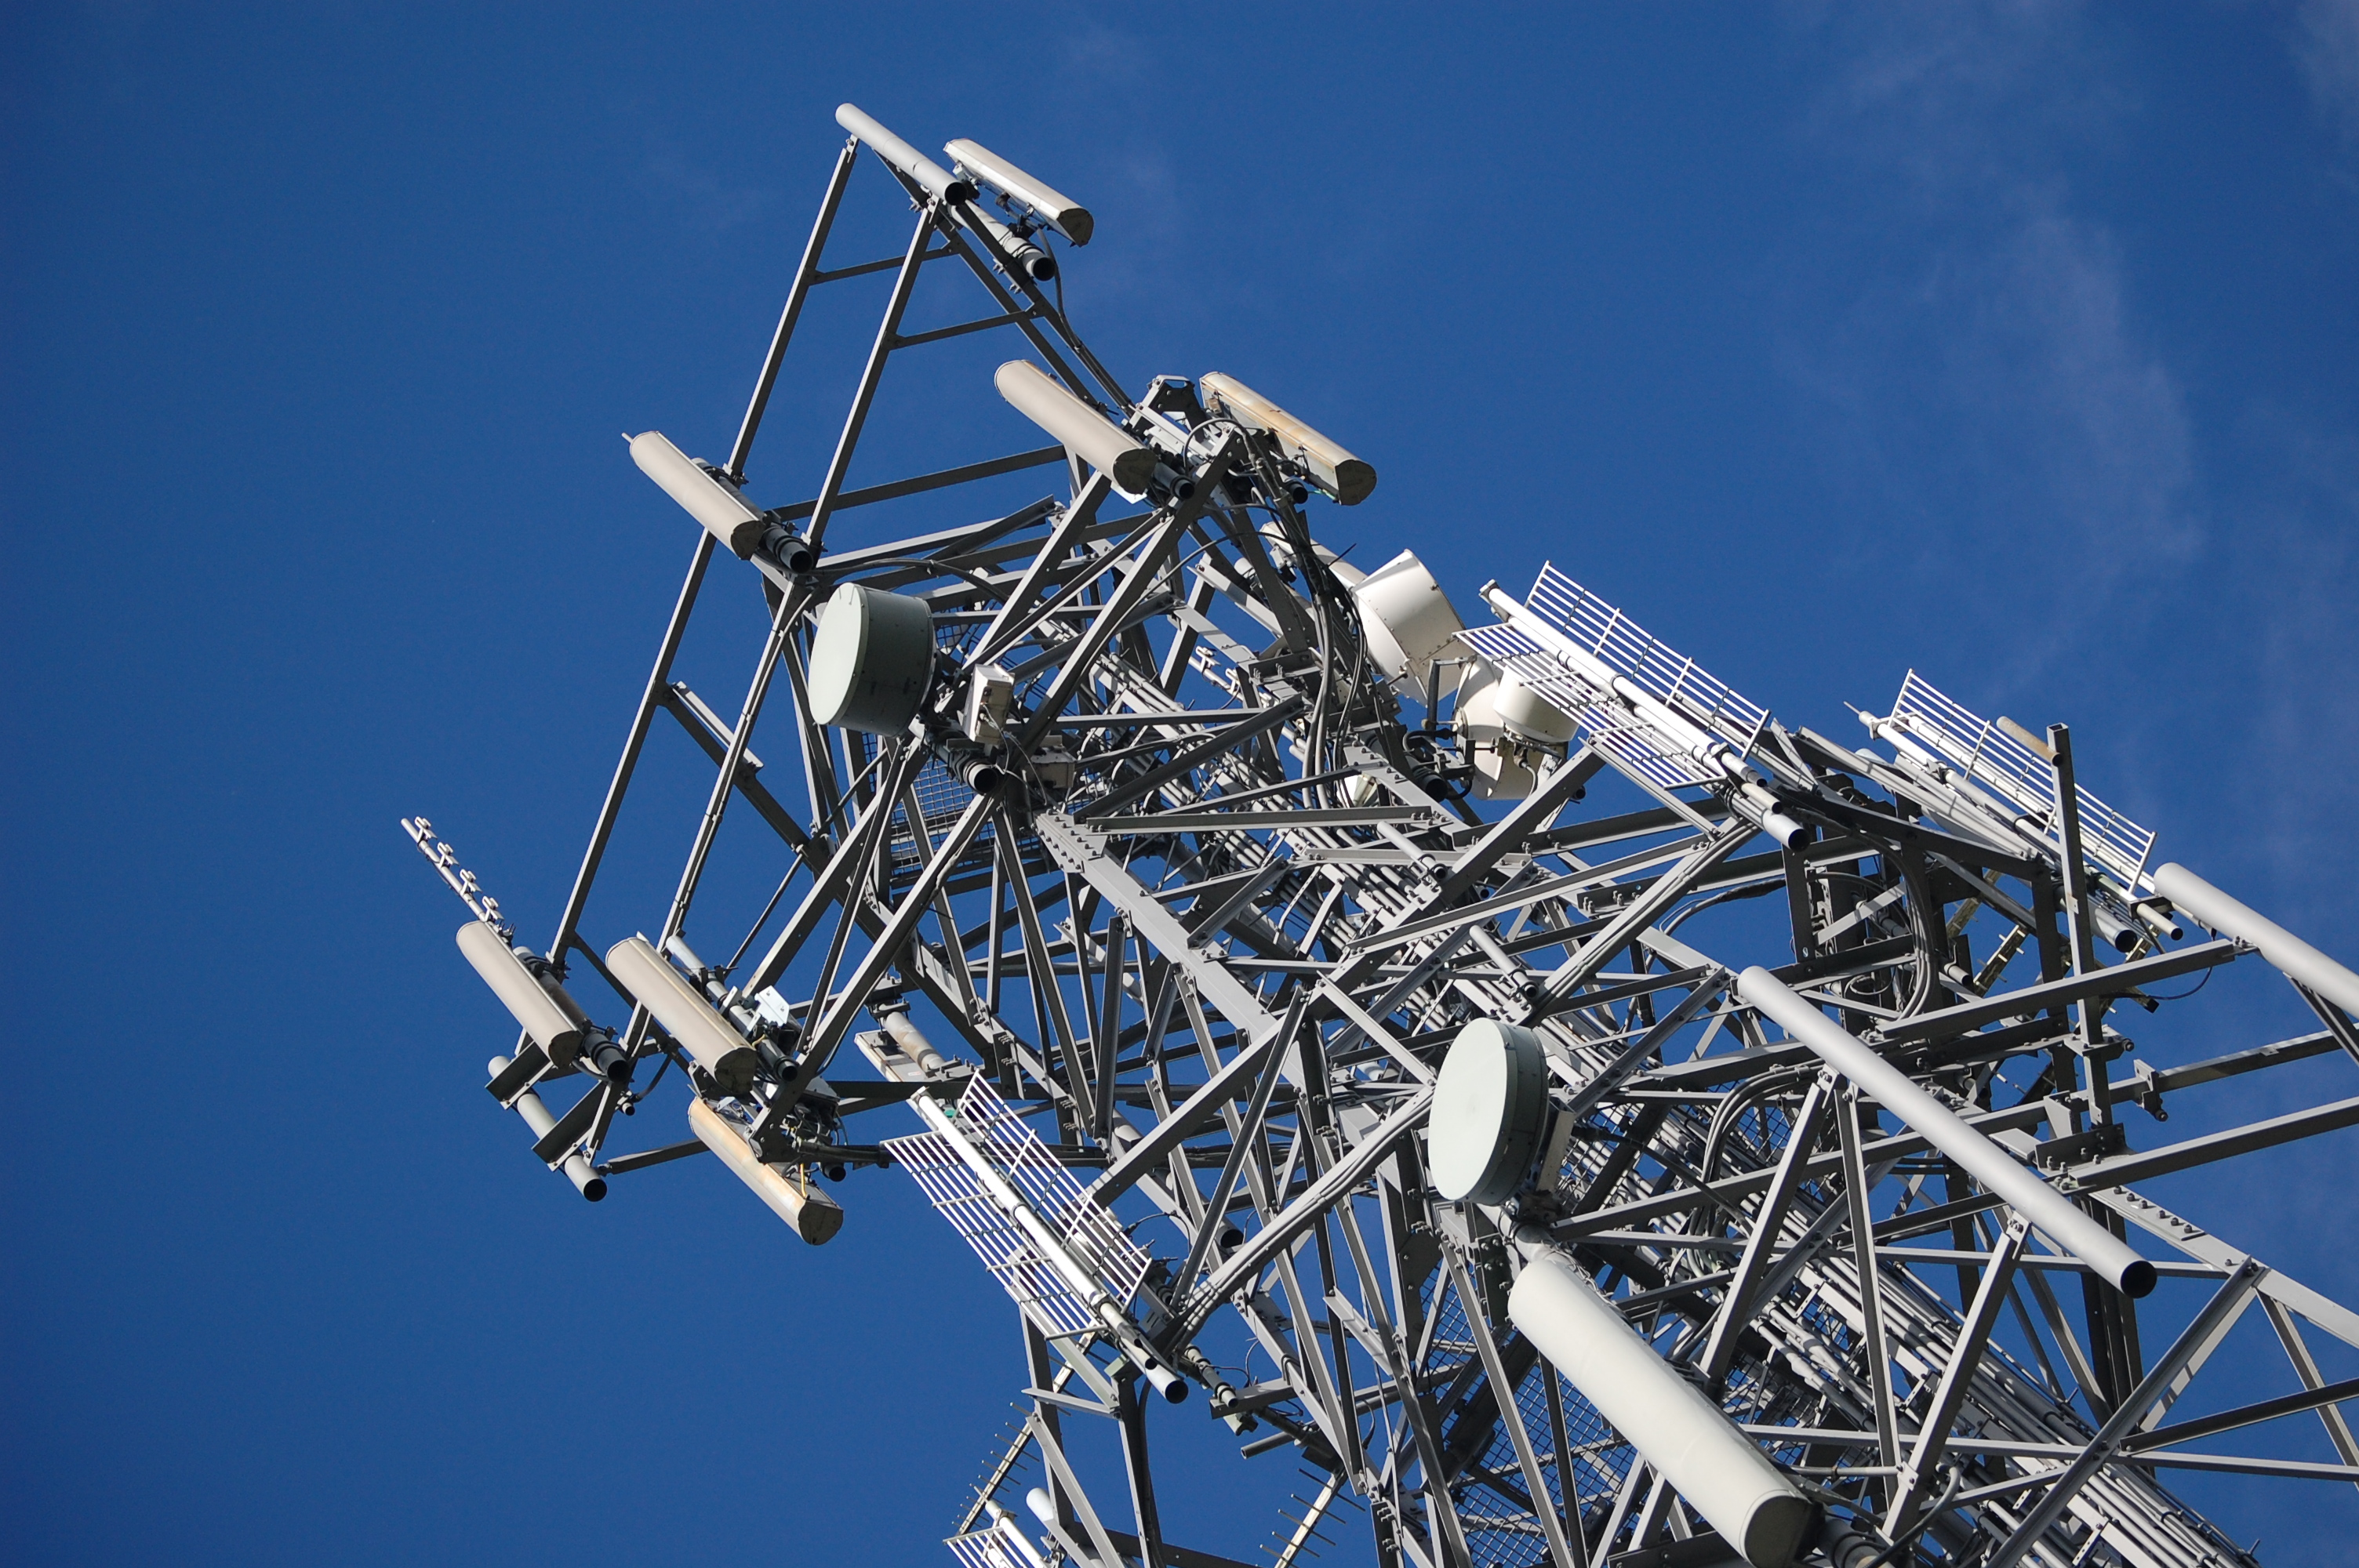 Companies are apologizing for cellphone and internet outages